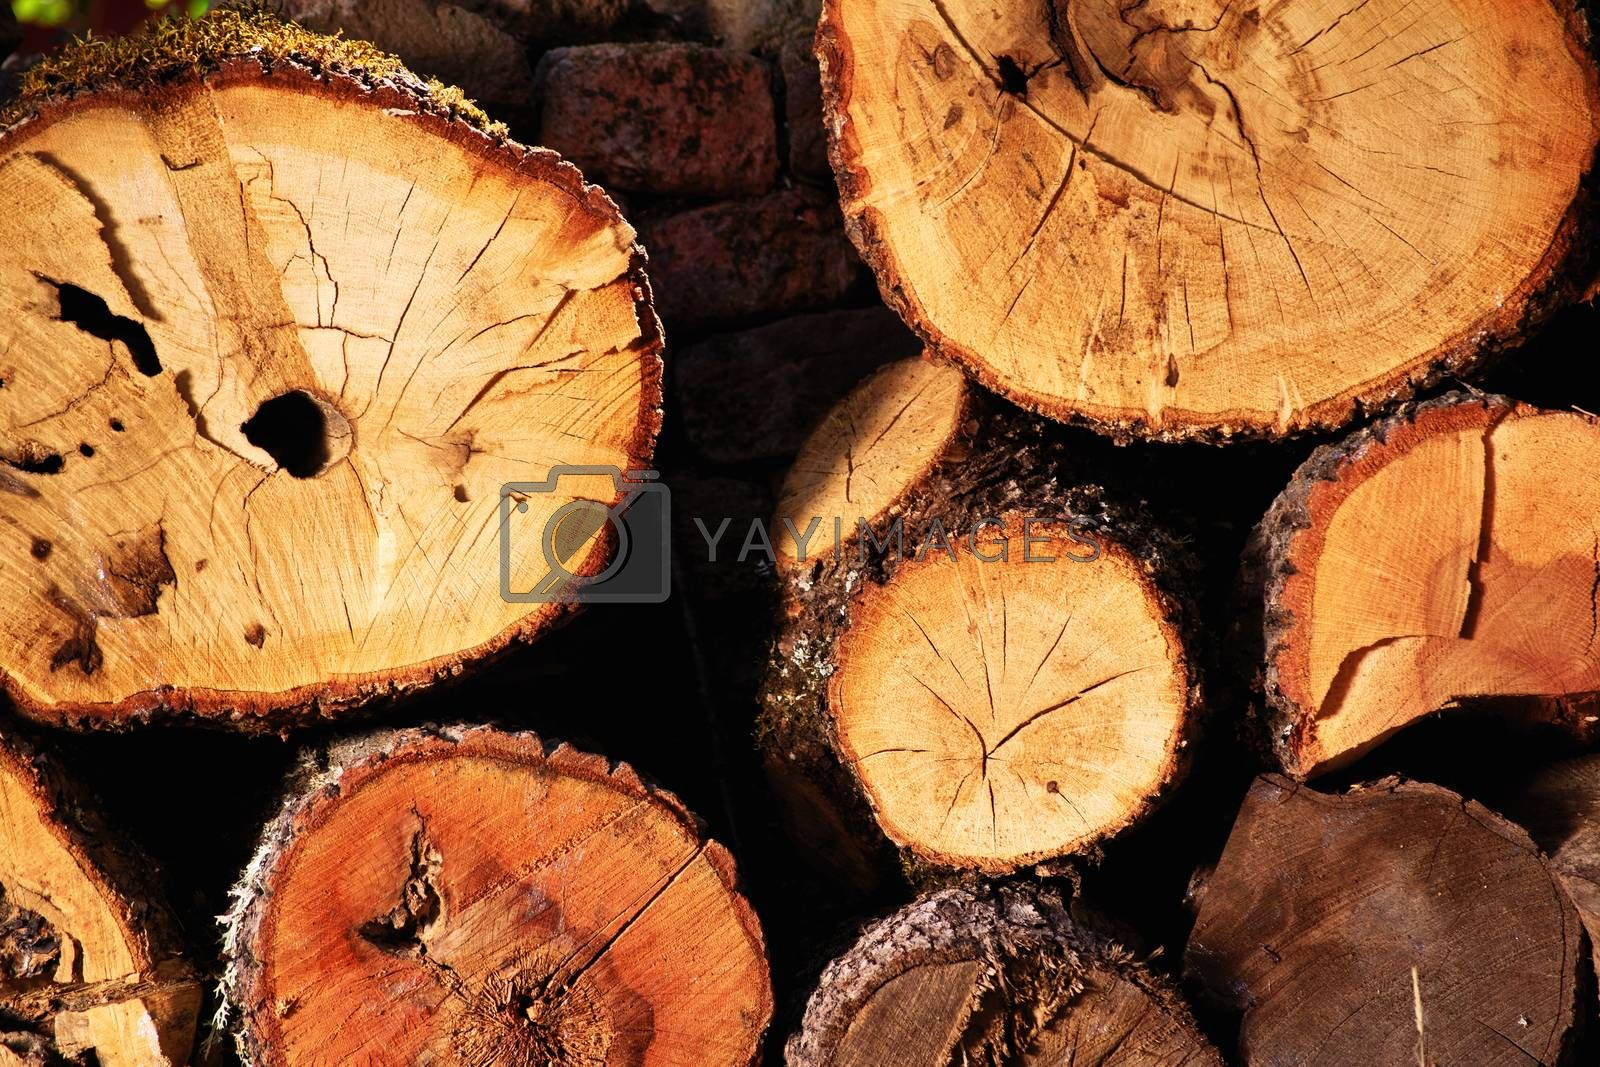 Freshly cut and stacked tree logs ready for the winter fireplace. Wooden logs as background.